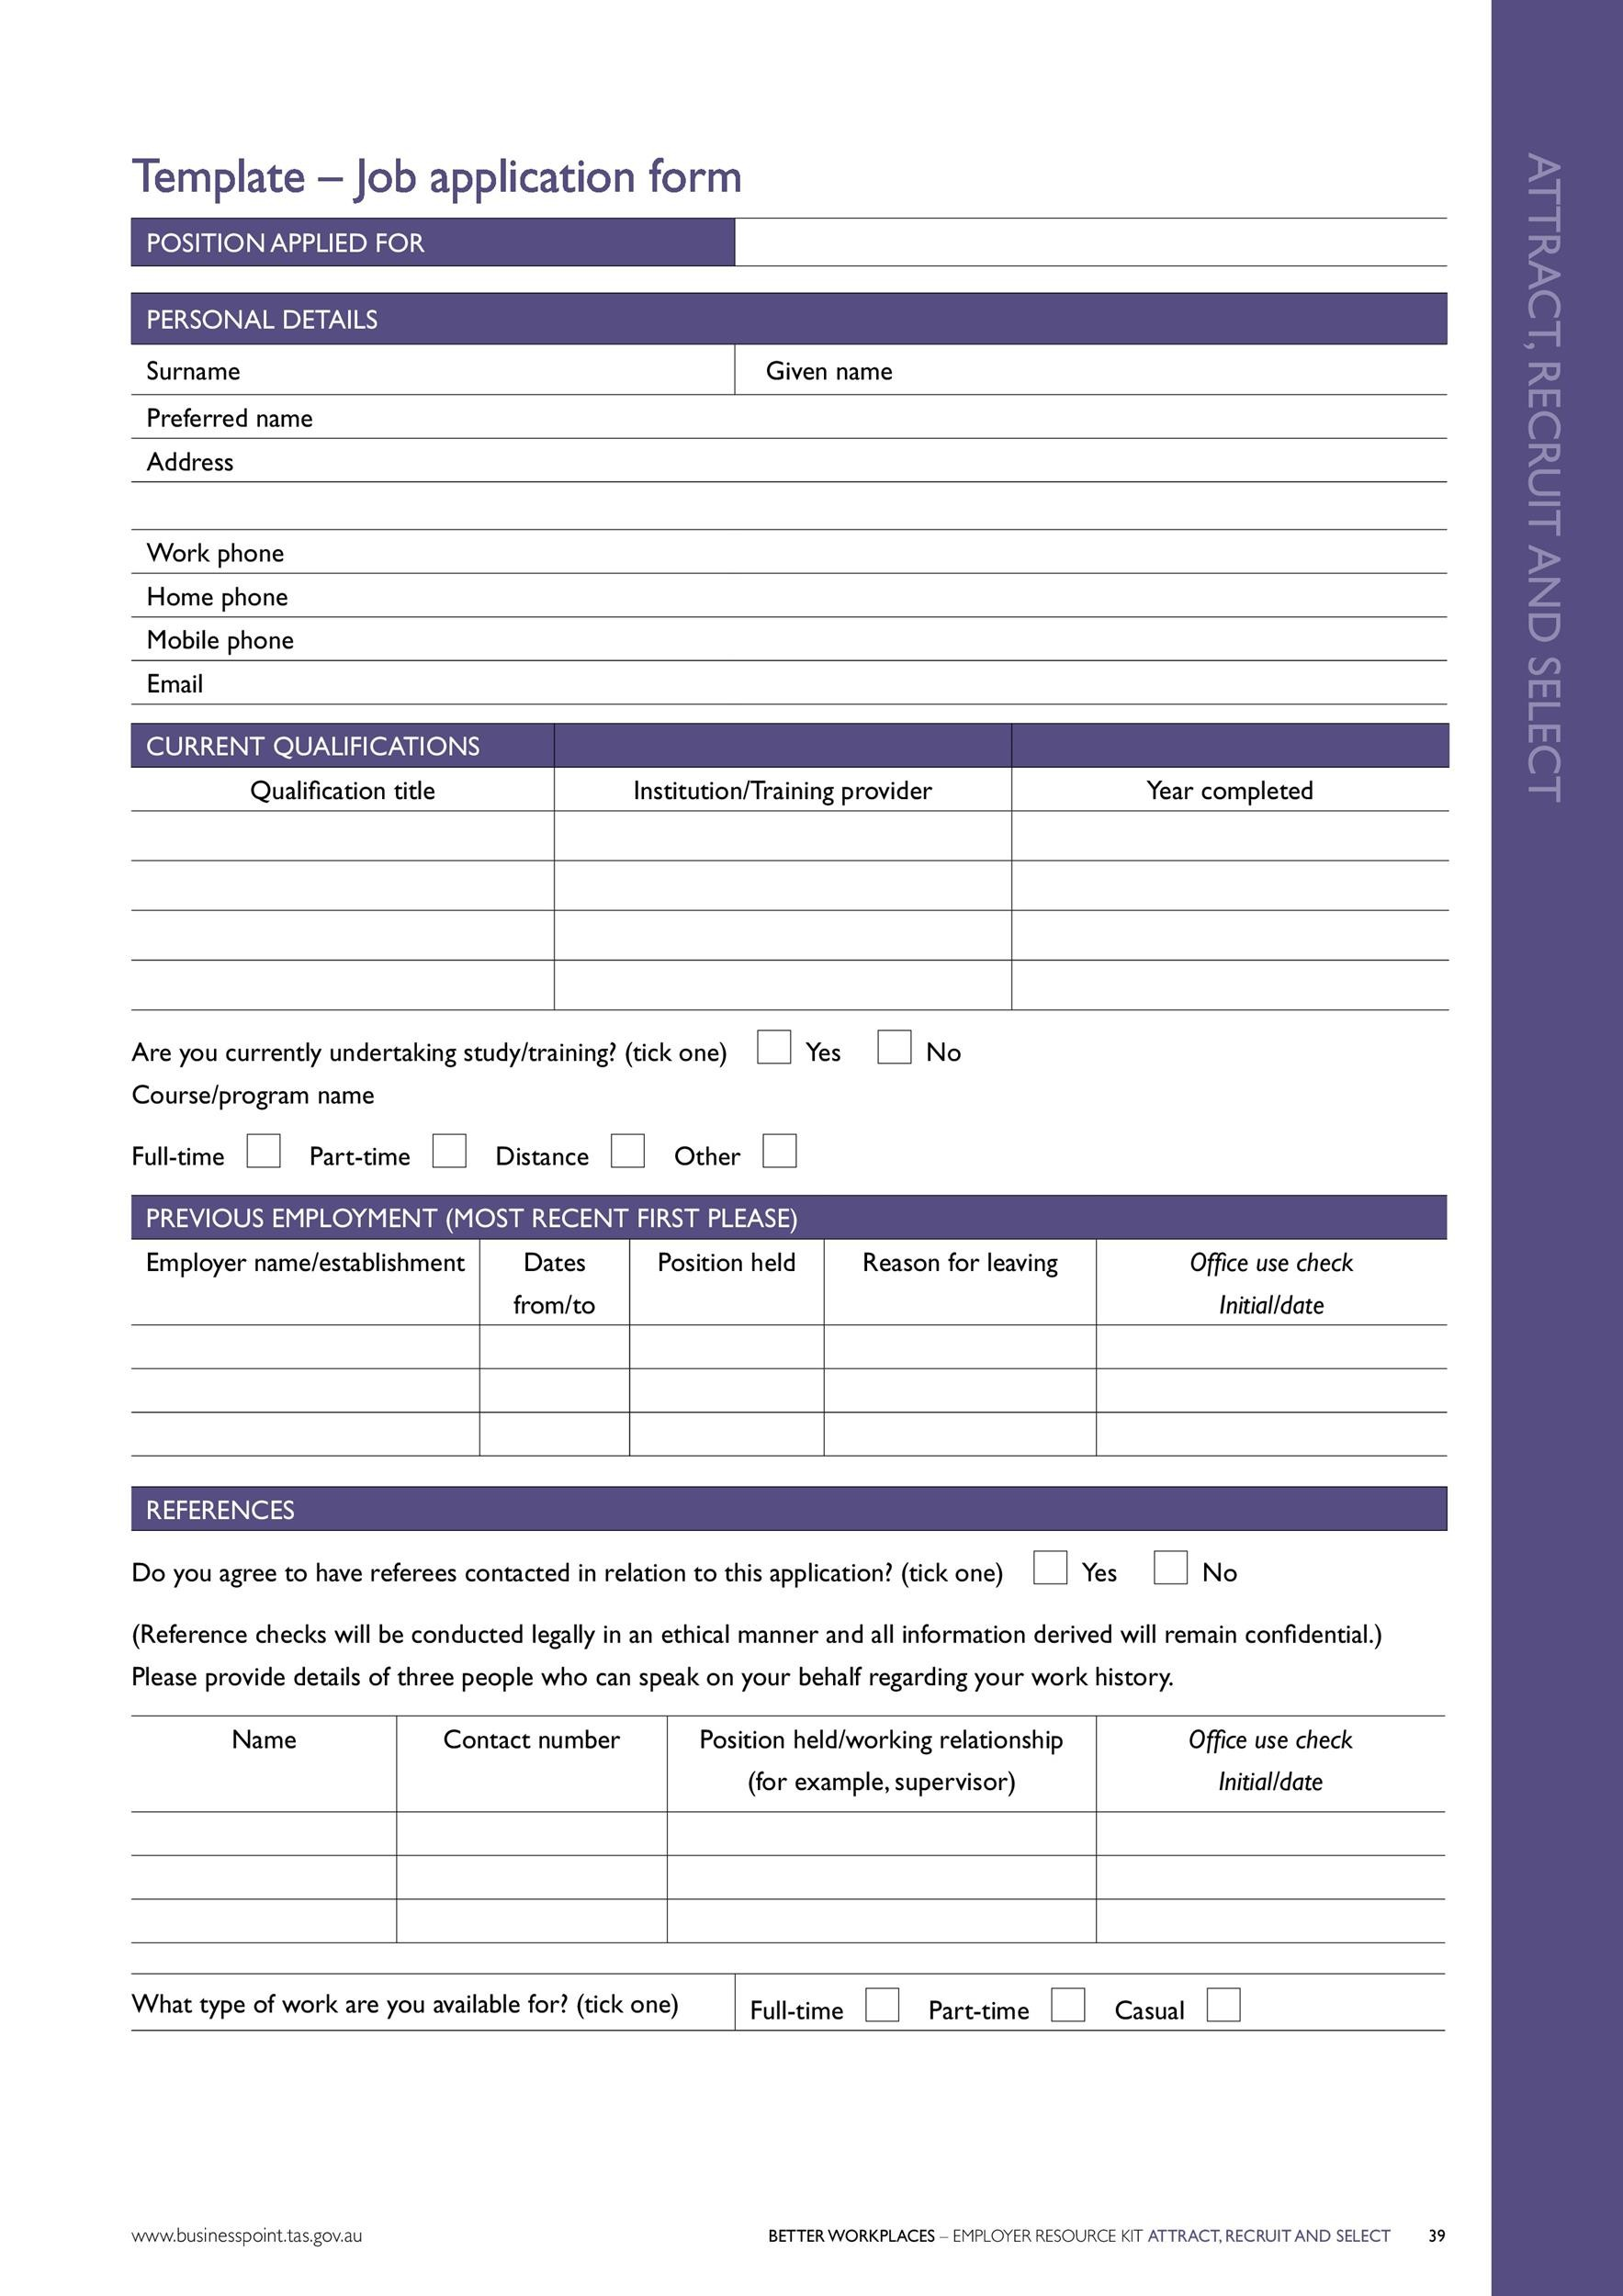 Job Application Form Free Pdf Employment Download 50 Free Employment Job Application Form Templates